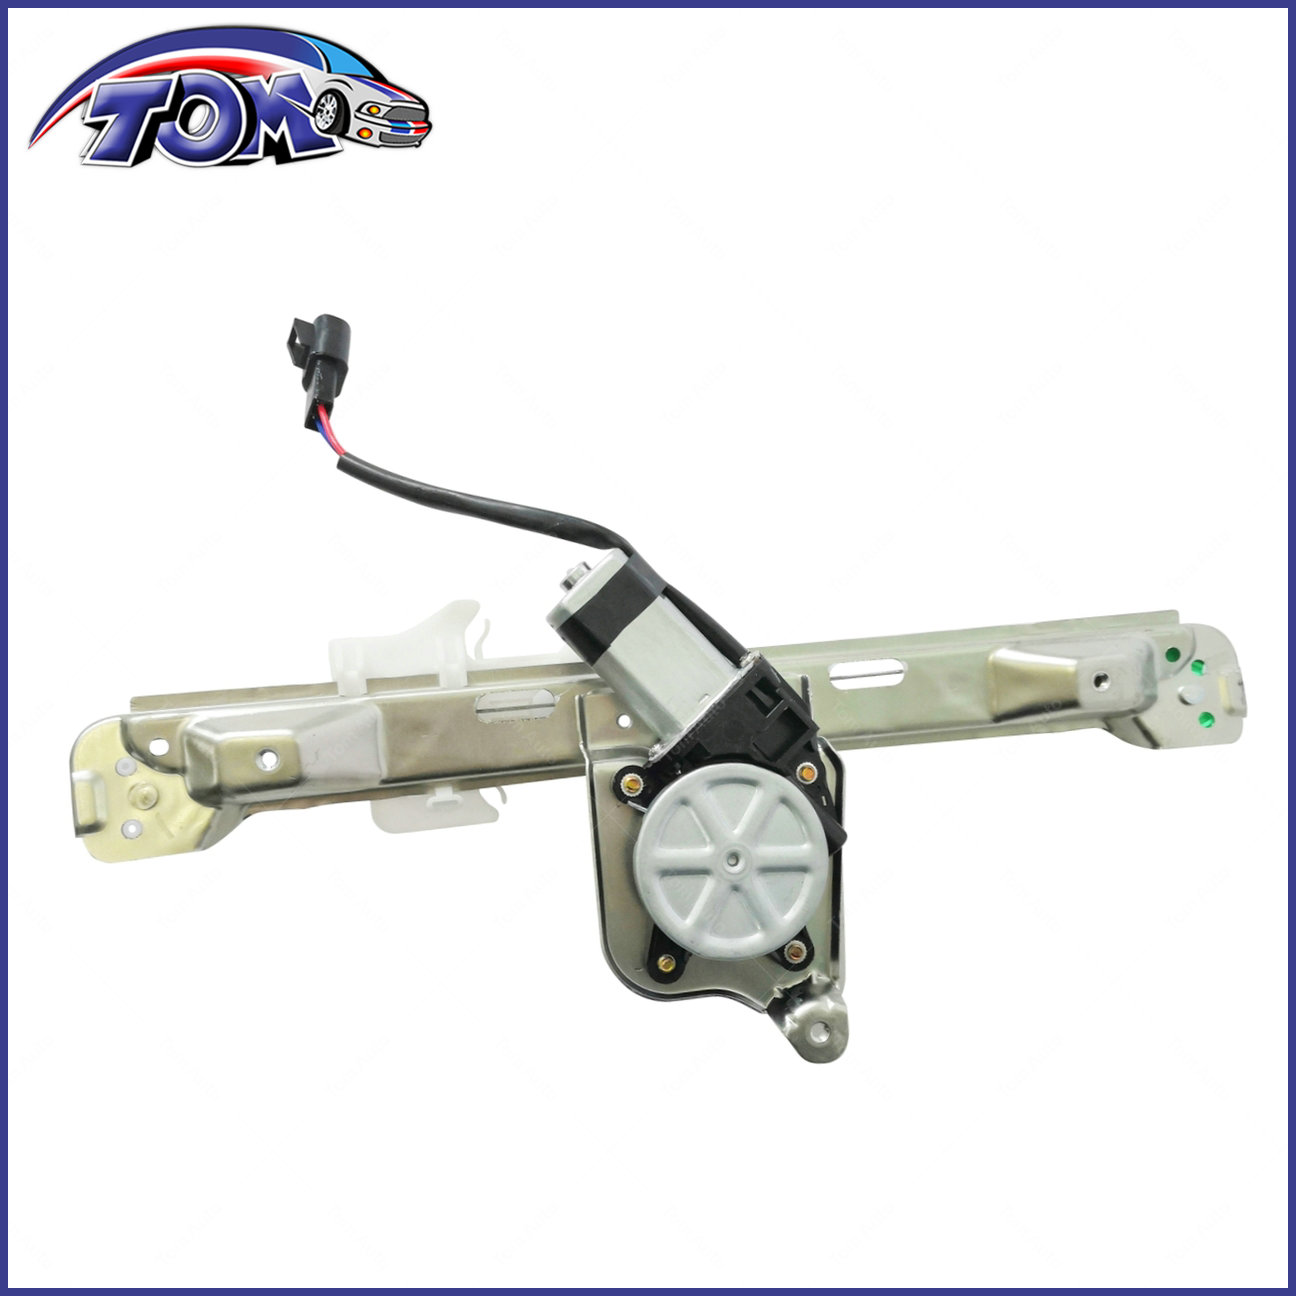 Dorman 748-536 Chevrolet Malibu Rear Driver Side Window Regulator with Motor